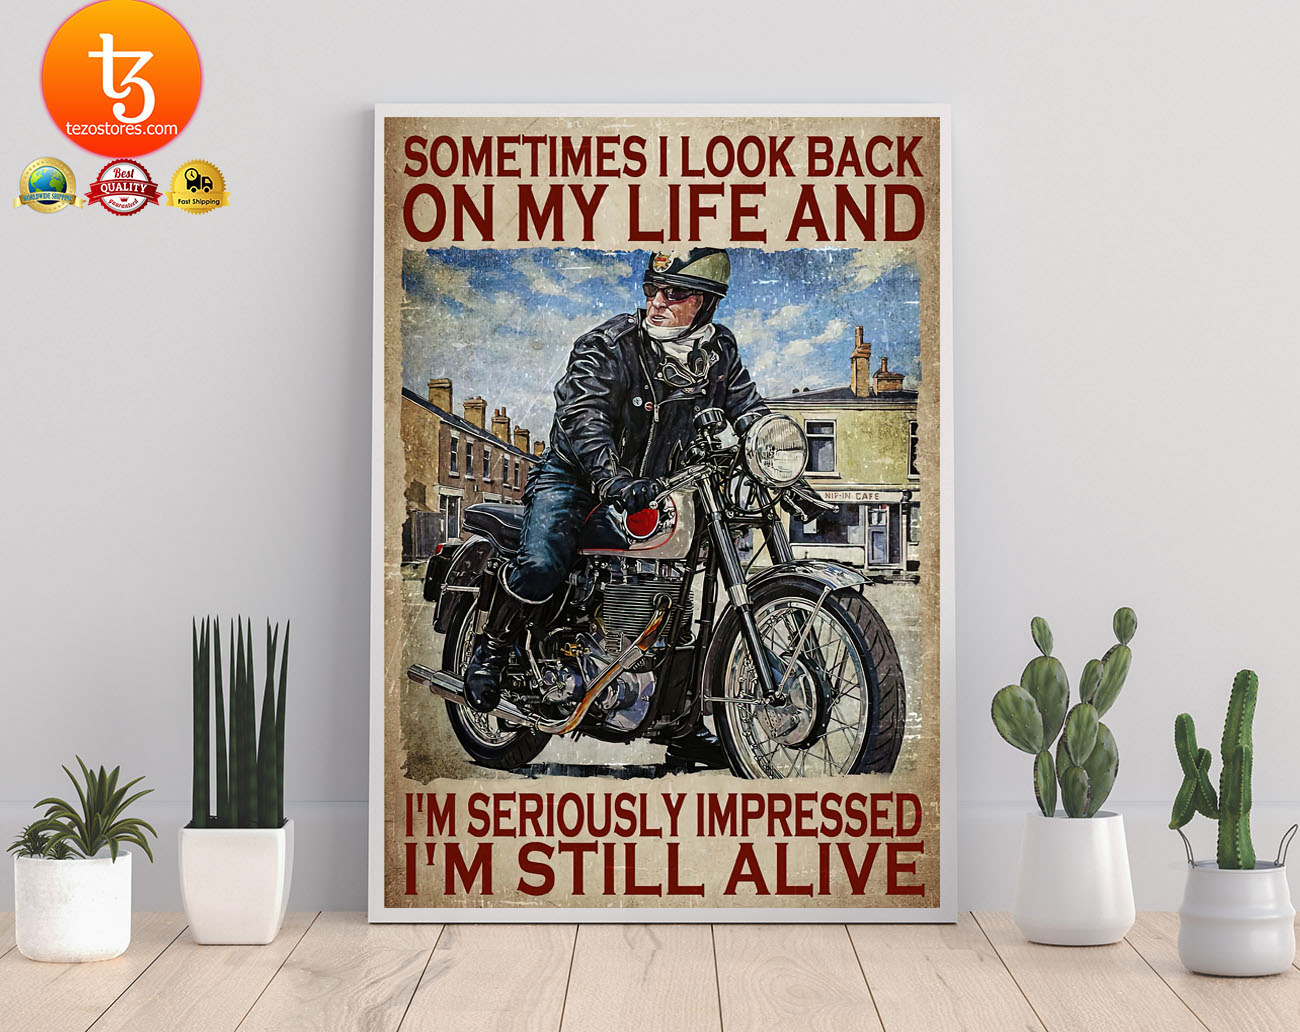 Motorcycles man Sometimes I look back on my life and Im seriously impressed Im still alive poster 22 1